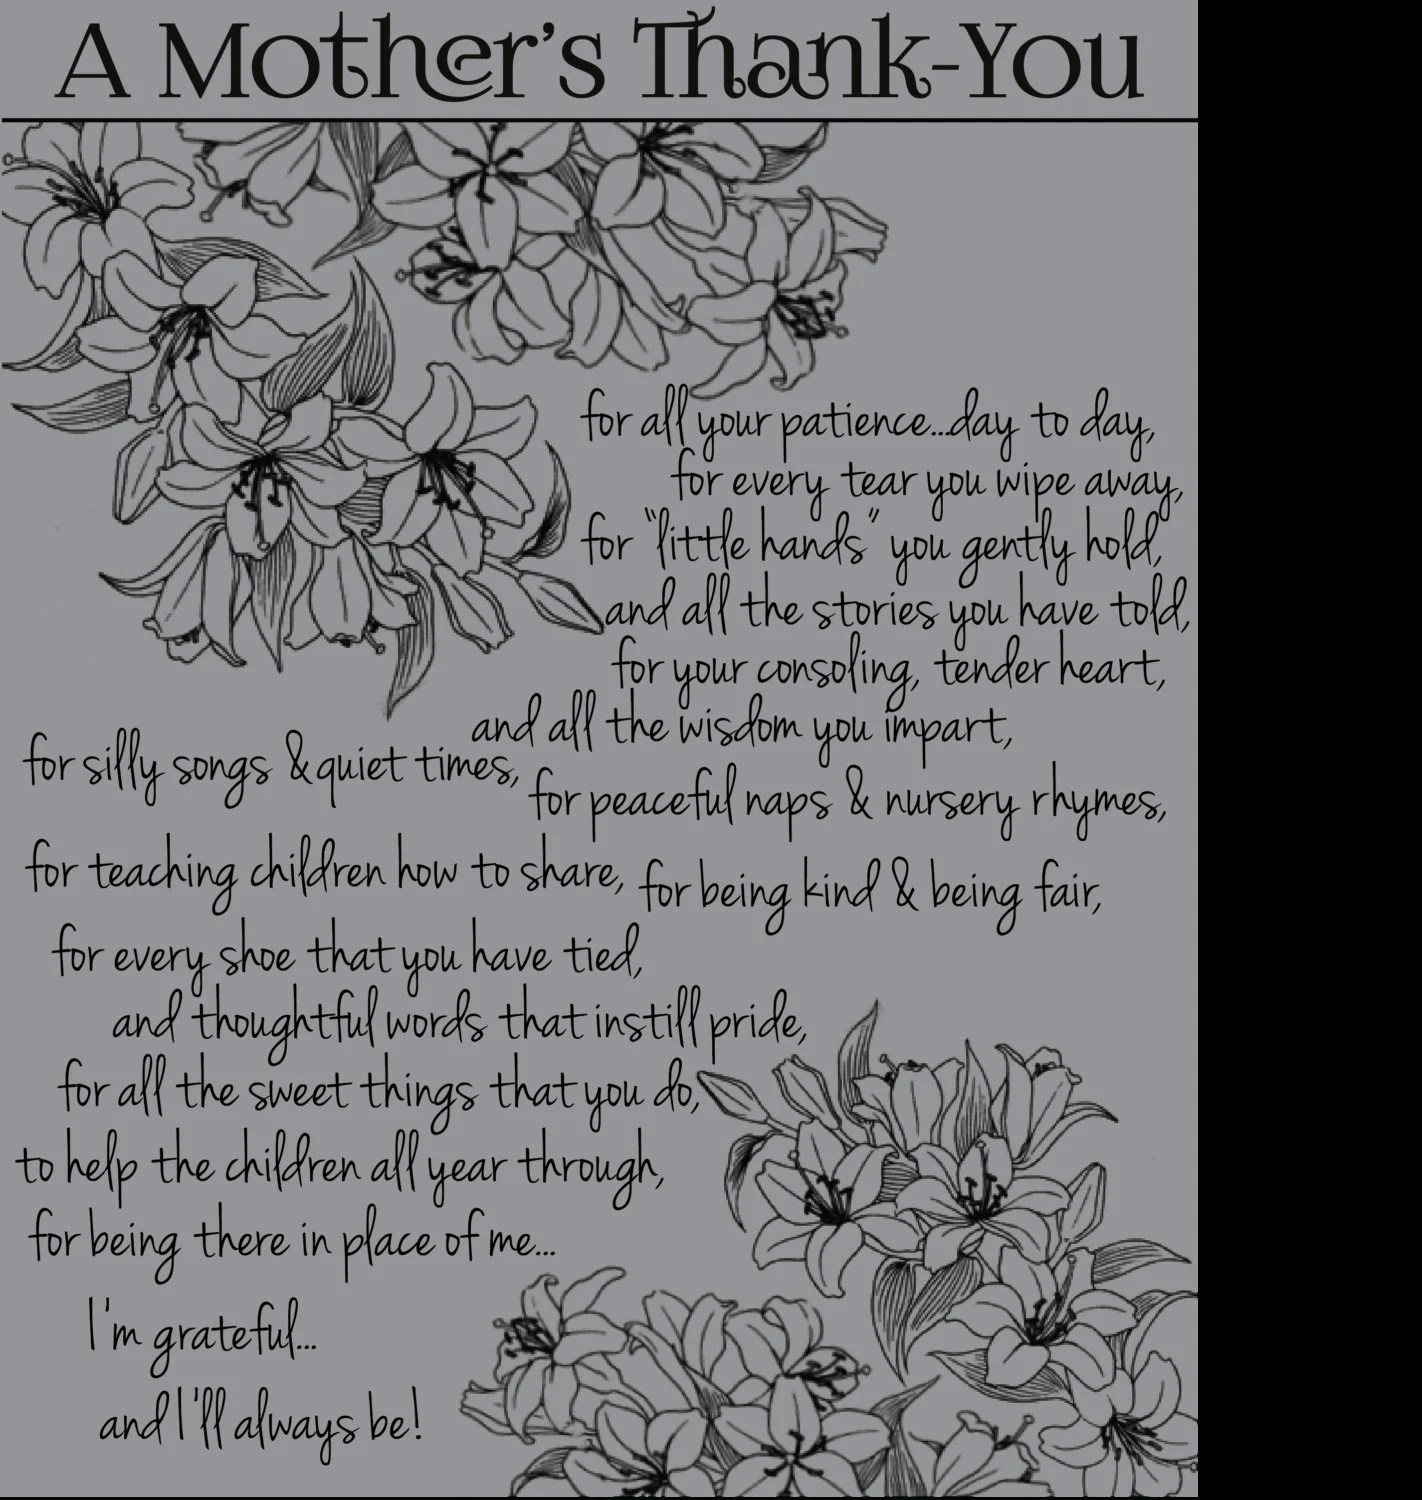 Items similar to A mother's thank you on Etsy